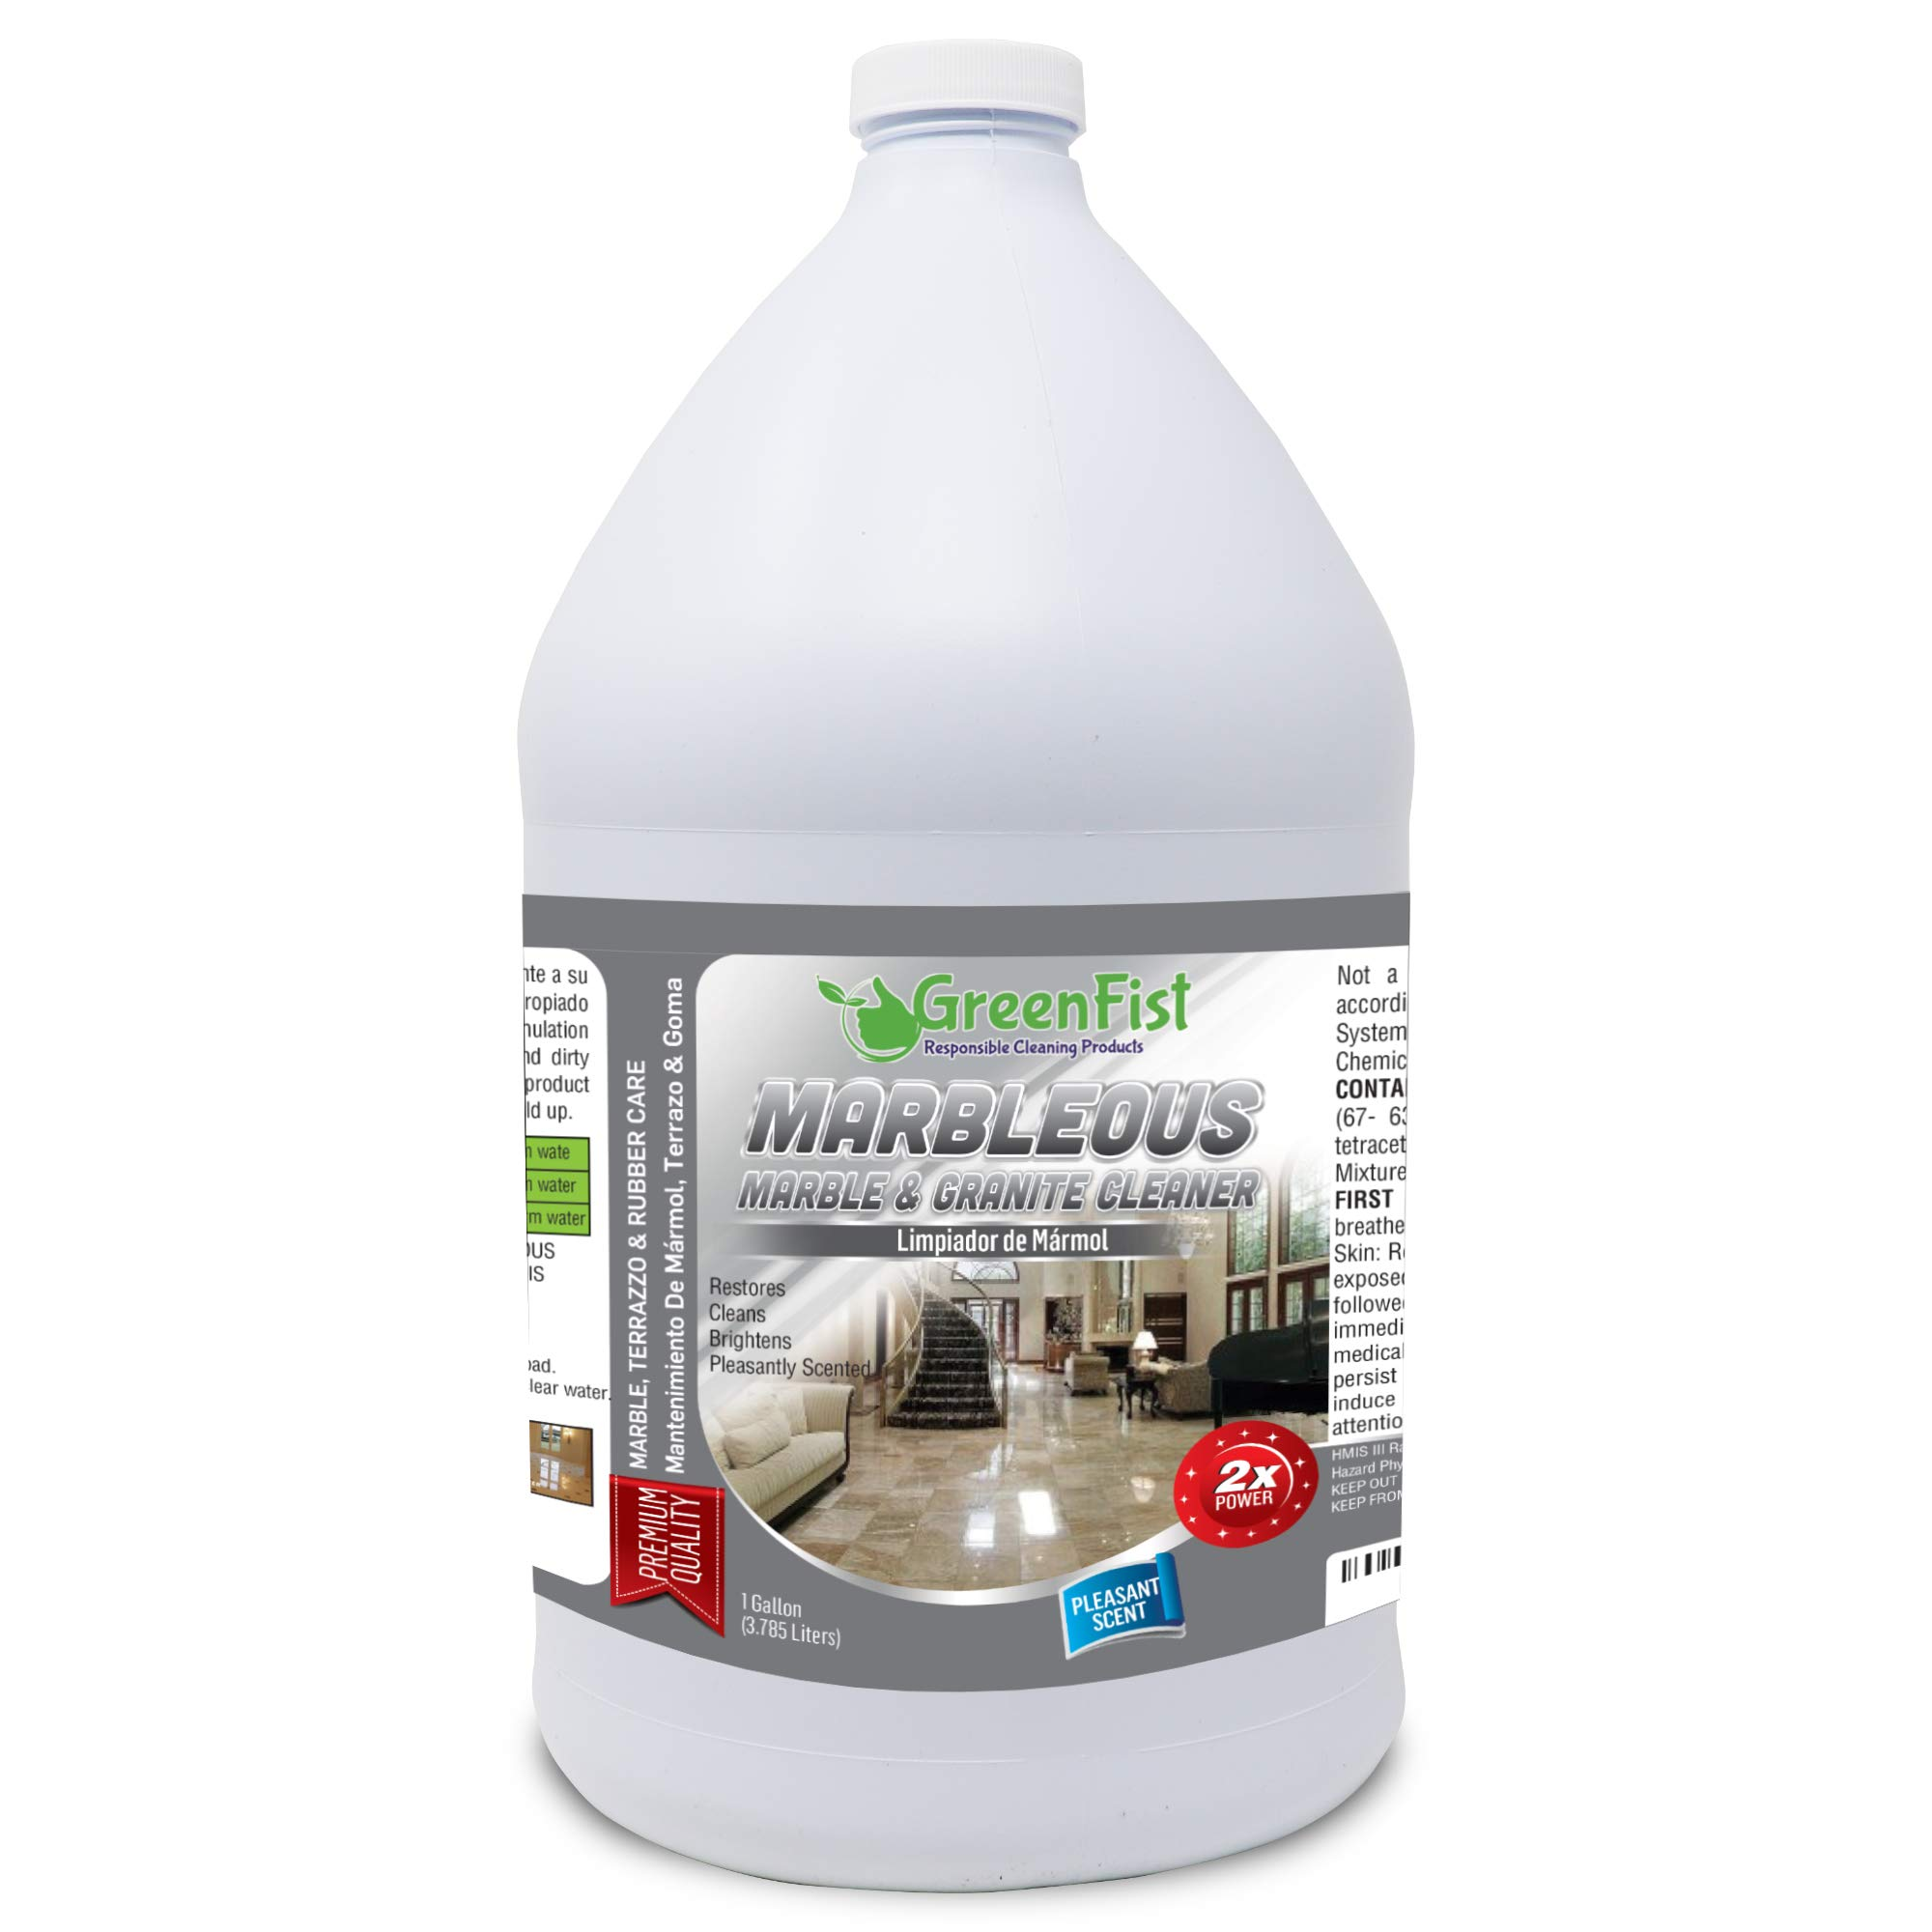 GreenFist Marbleous Marble Cleaner and Other Stone Surfaces Brightener & Restorer [Tile,Countertop,Porcelain,Lime-Stone,Ceramic,Granite,Brick,Vinyl] (1 Gallon) by GreenFist (Image #1)